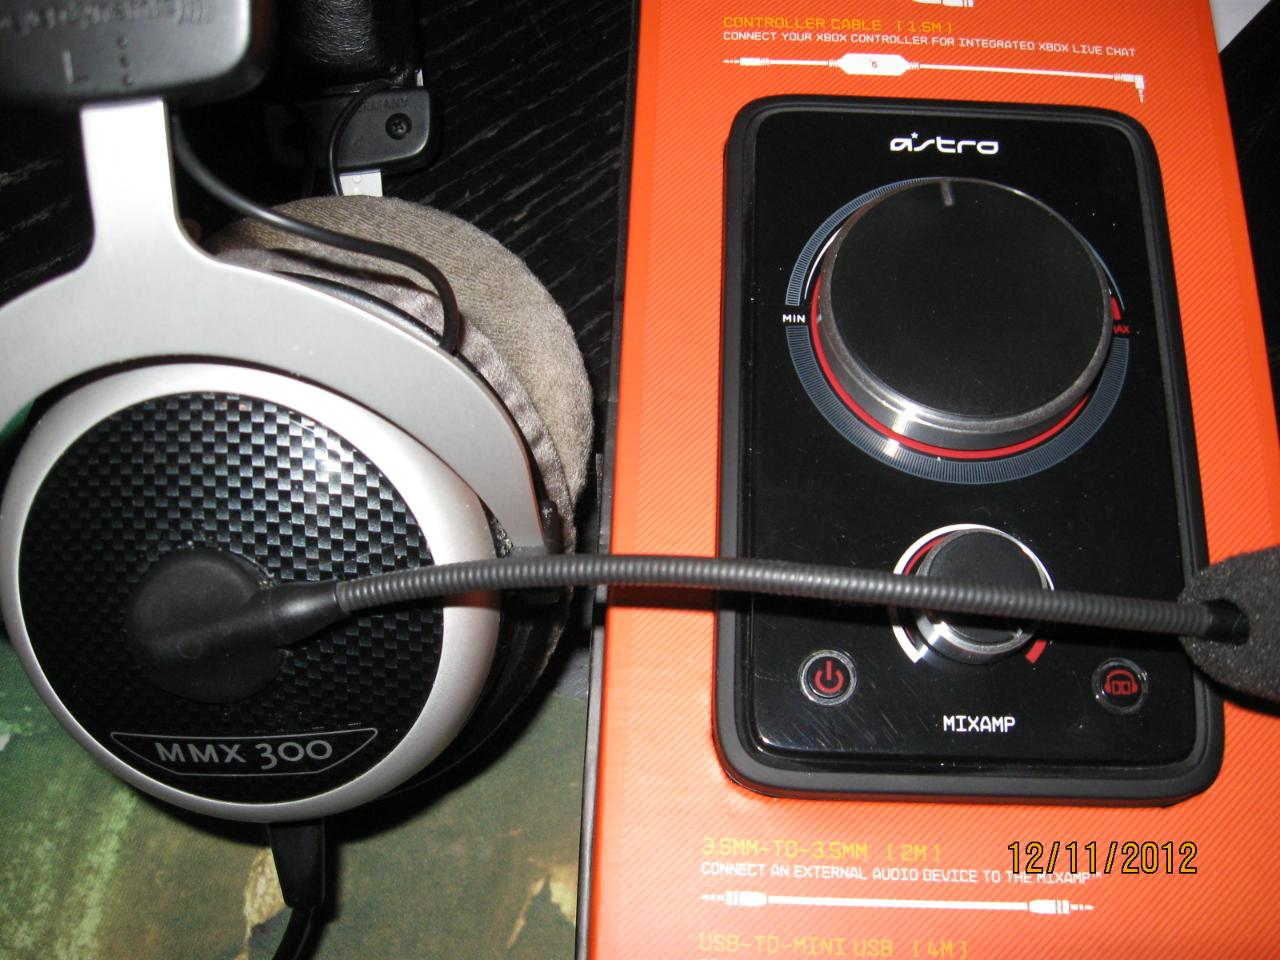 my gaming headset rig..a beyerdynamic MMX300 with an Astro mixamp..perfect set for gaming on my...